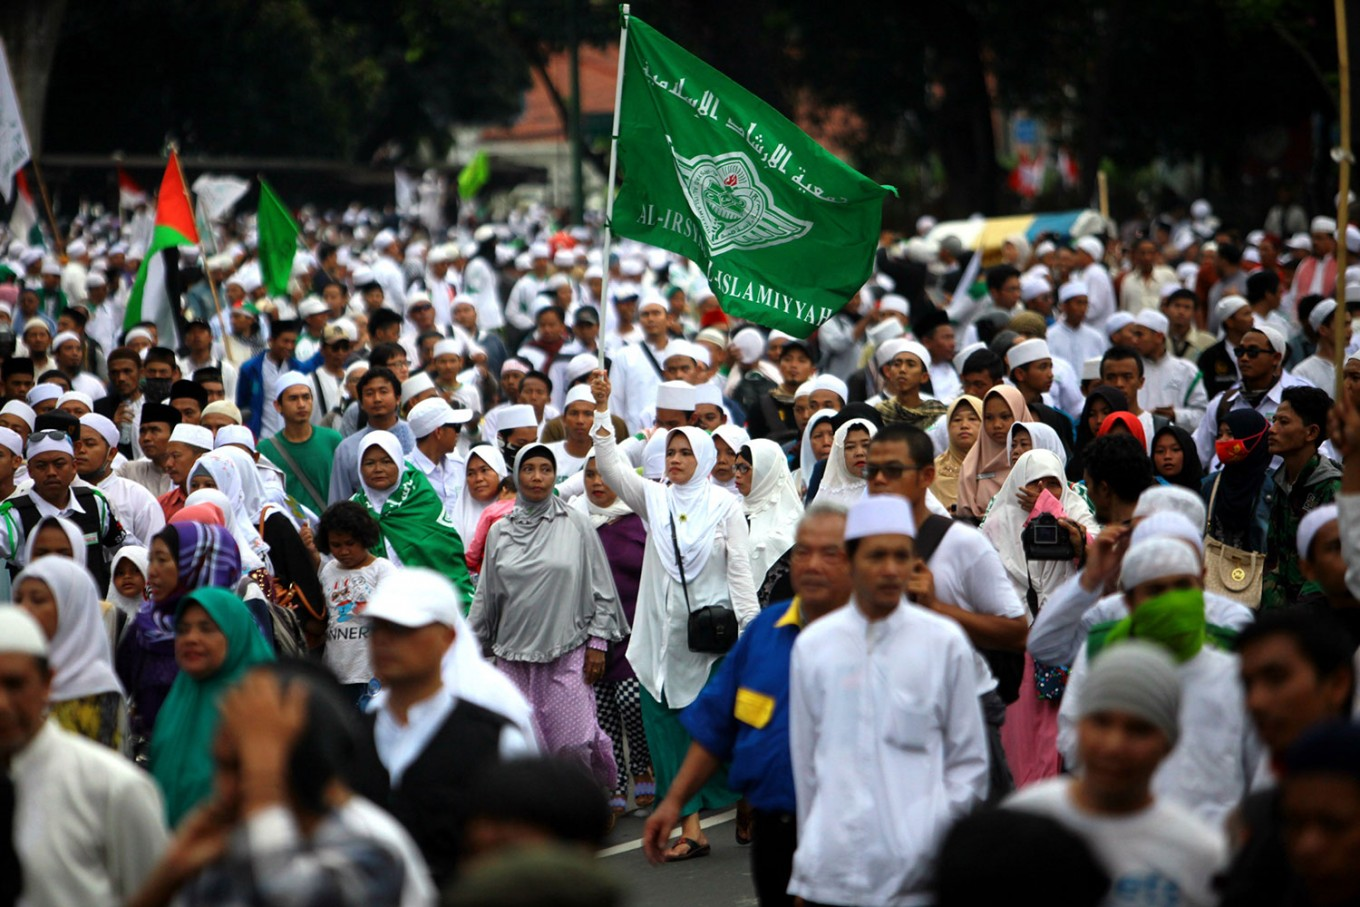 Ahok and hate speech: The (unexpected) outcome of democracy